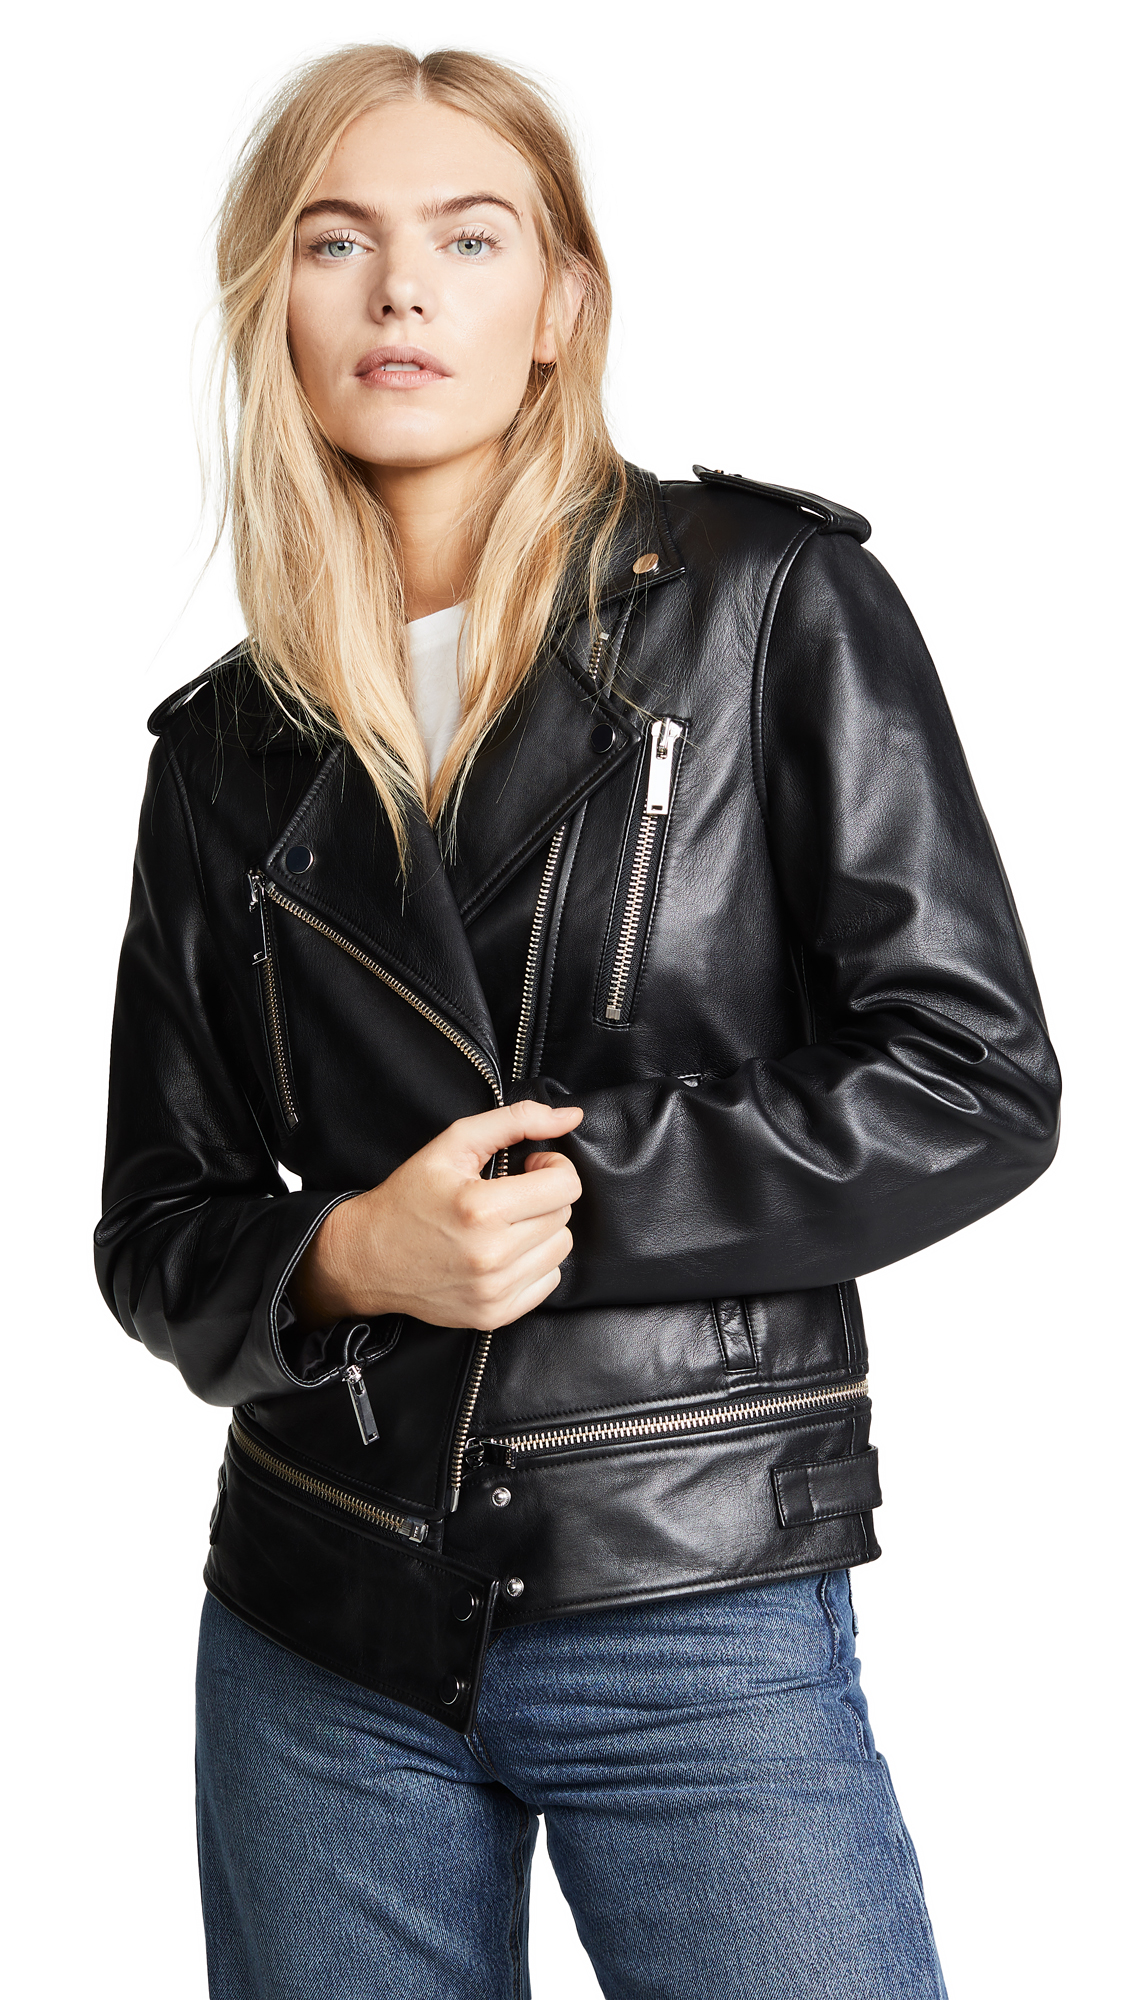 Jason Wu Grey Leather Jacket In Black